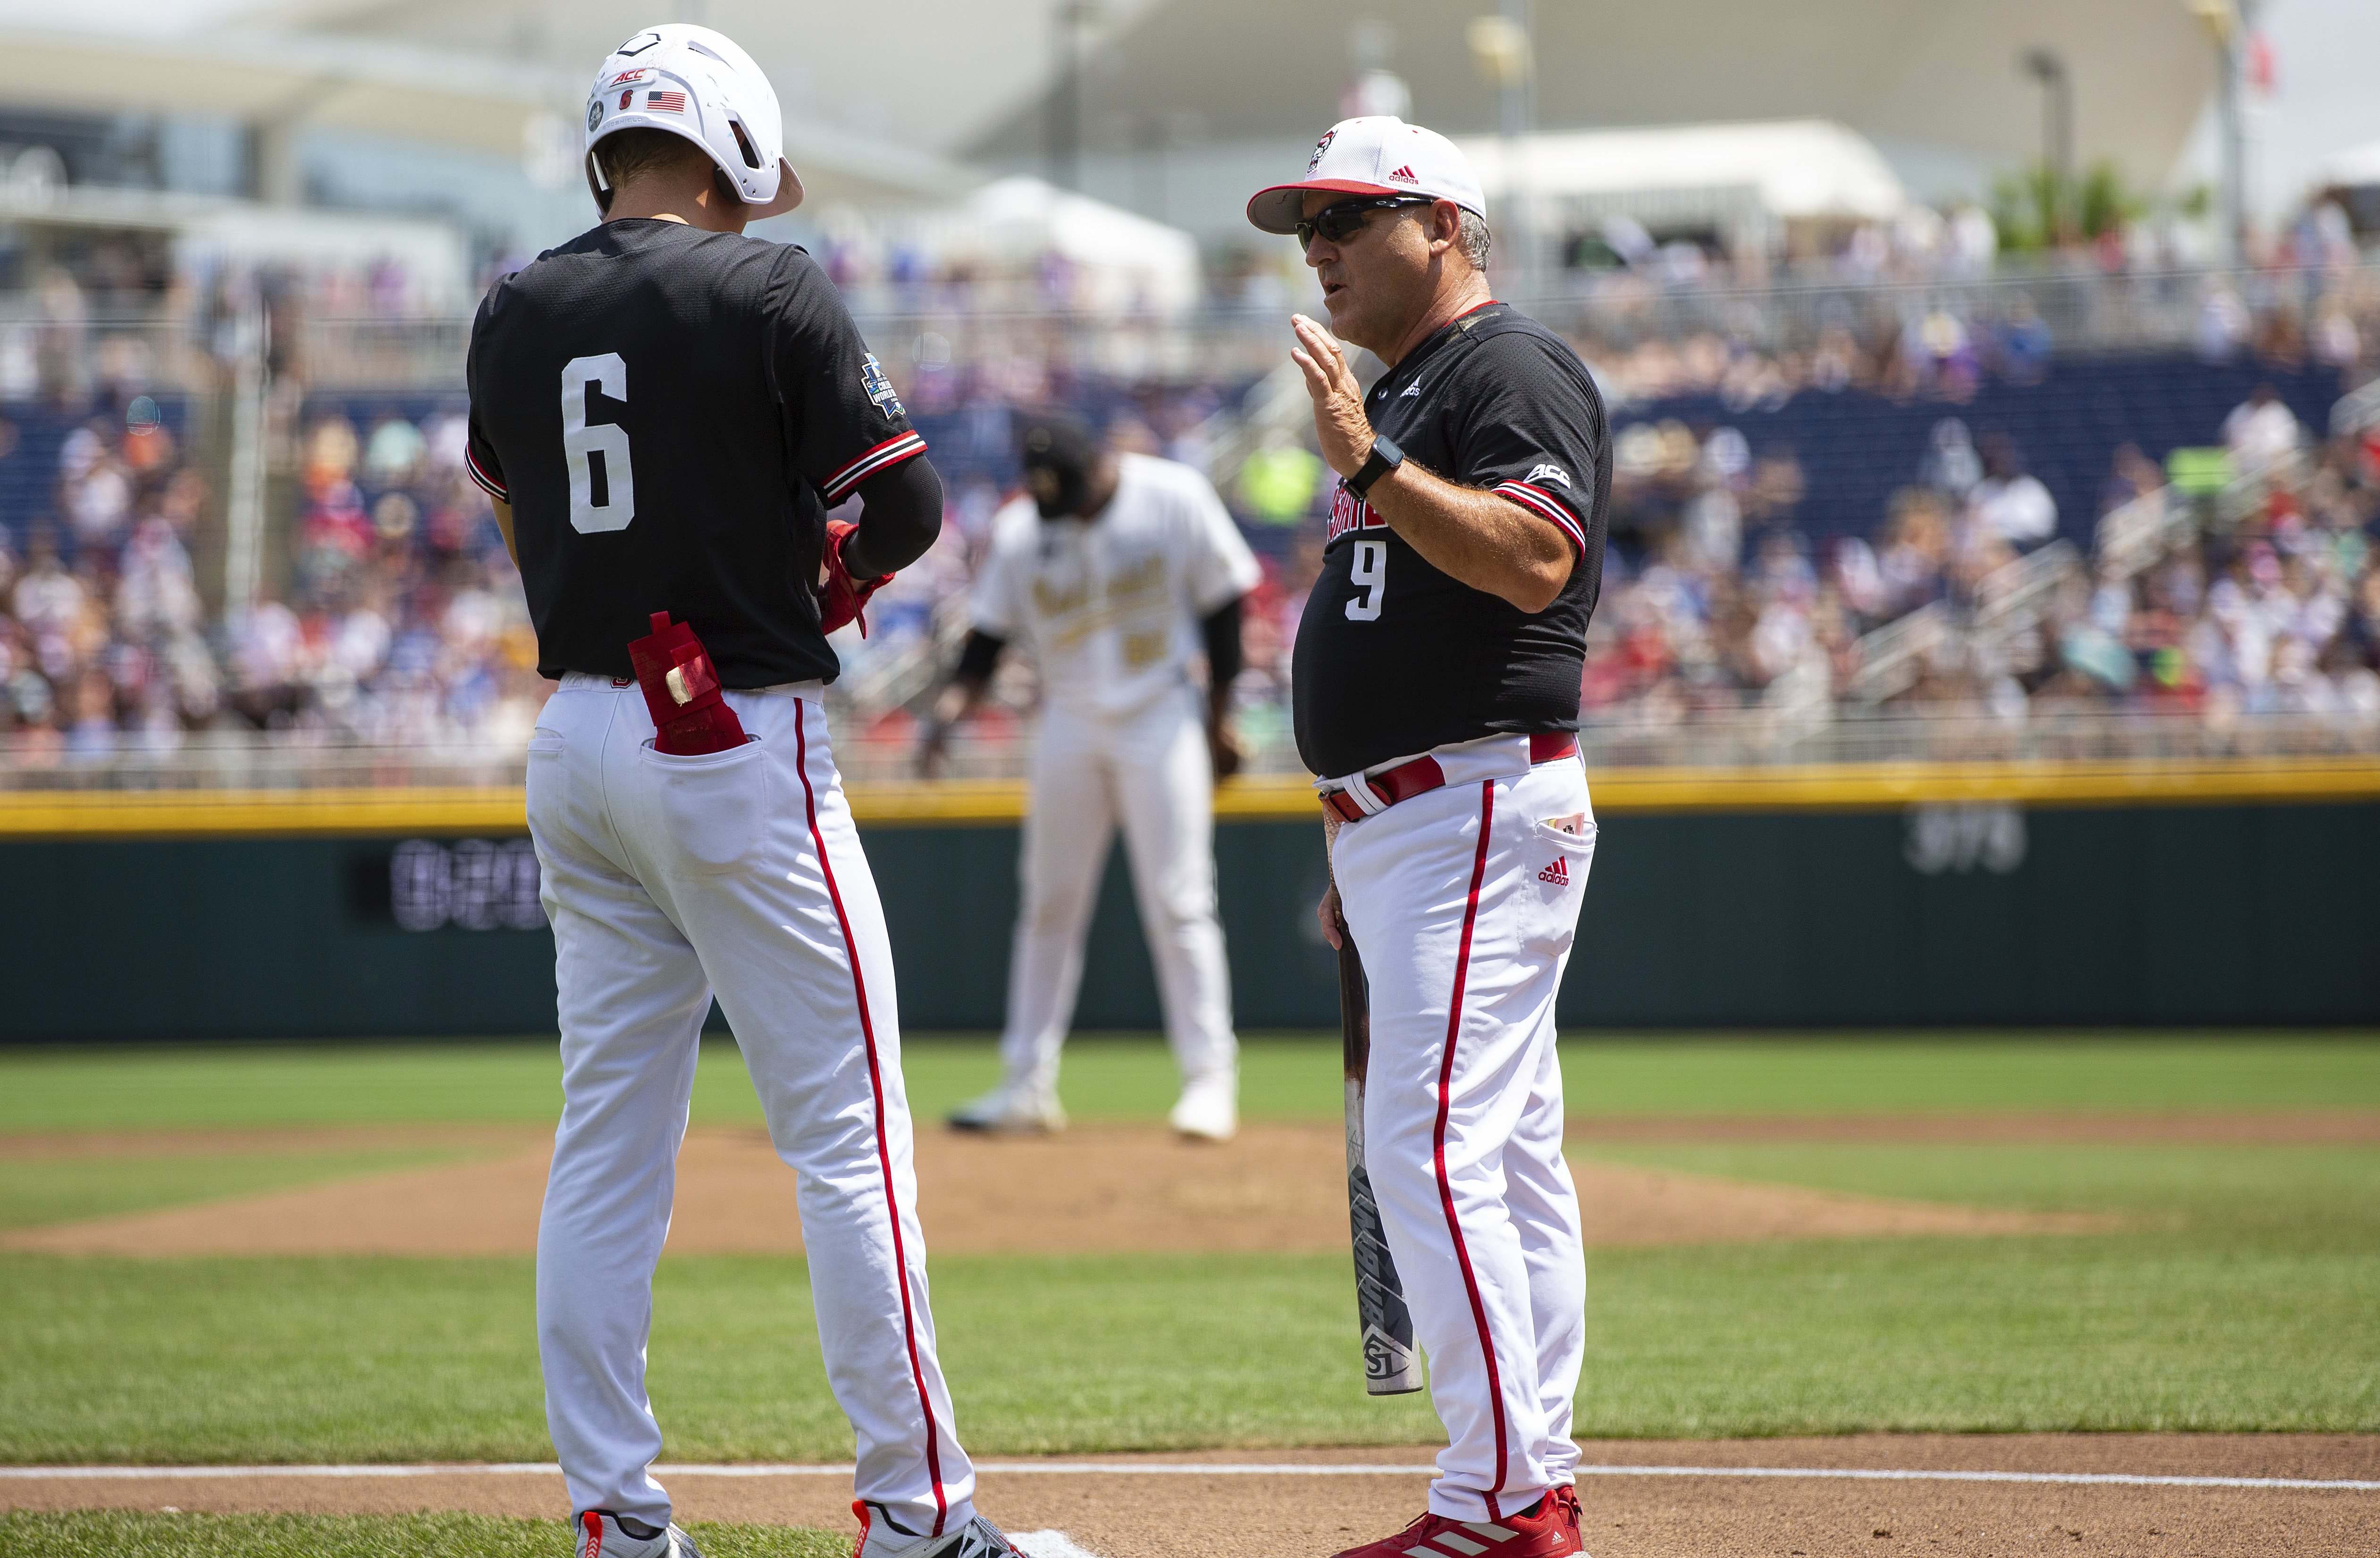 NC State Eliminated From 2021 Men's College World Series Due to COVID-19 Protocols